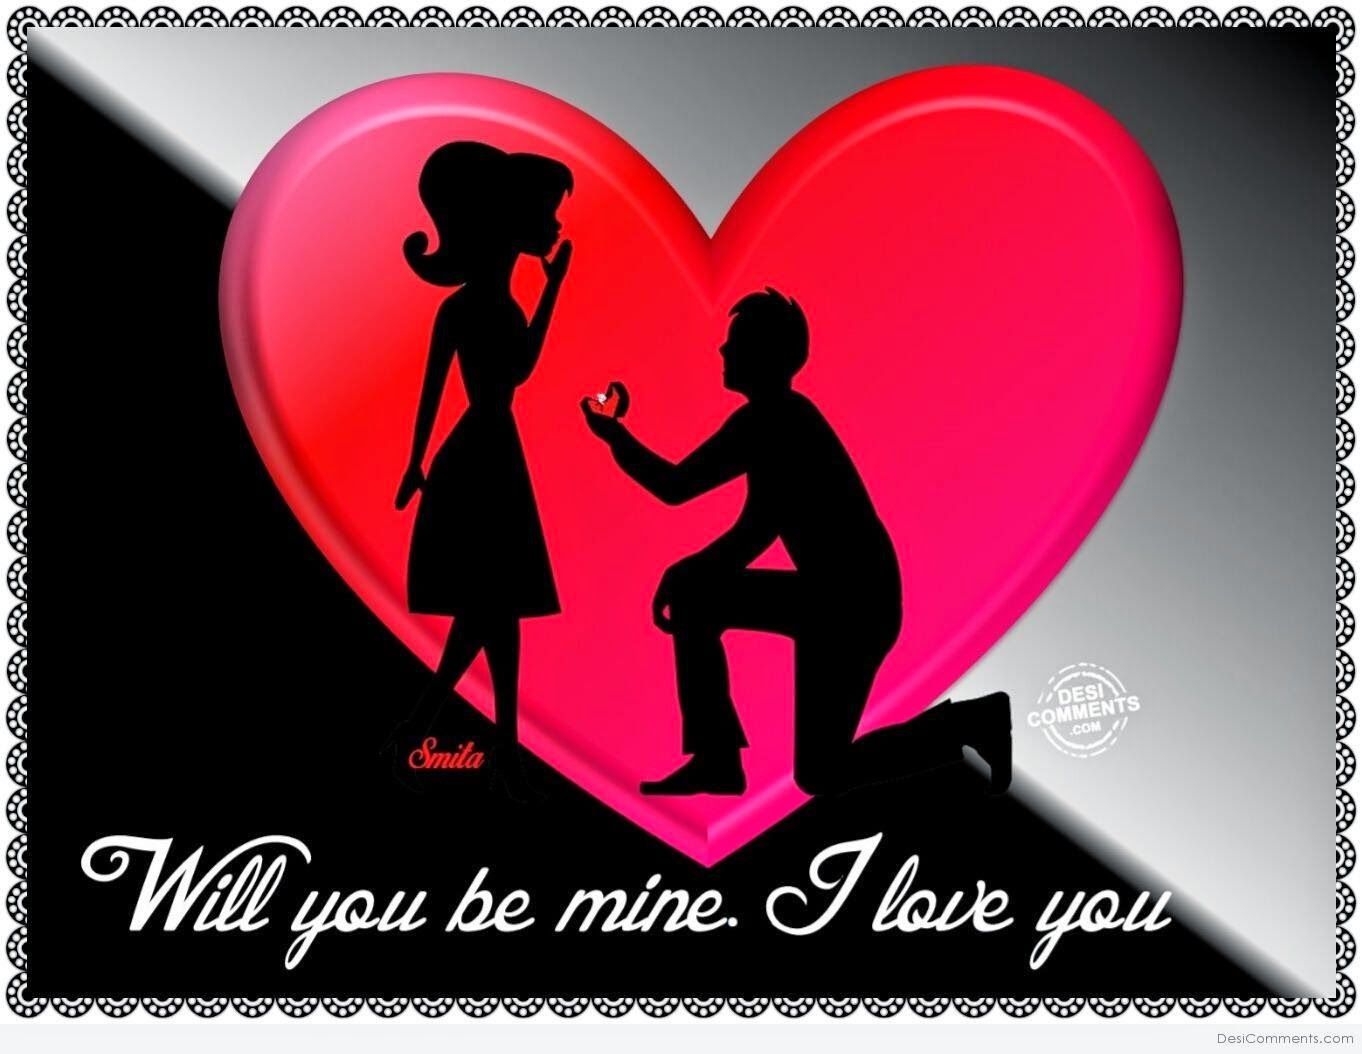 Never Hurts Anyone Feeling: Happy Propose day